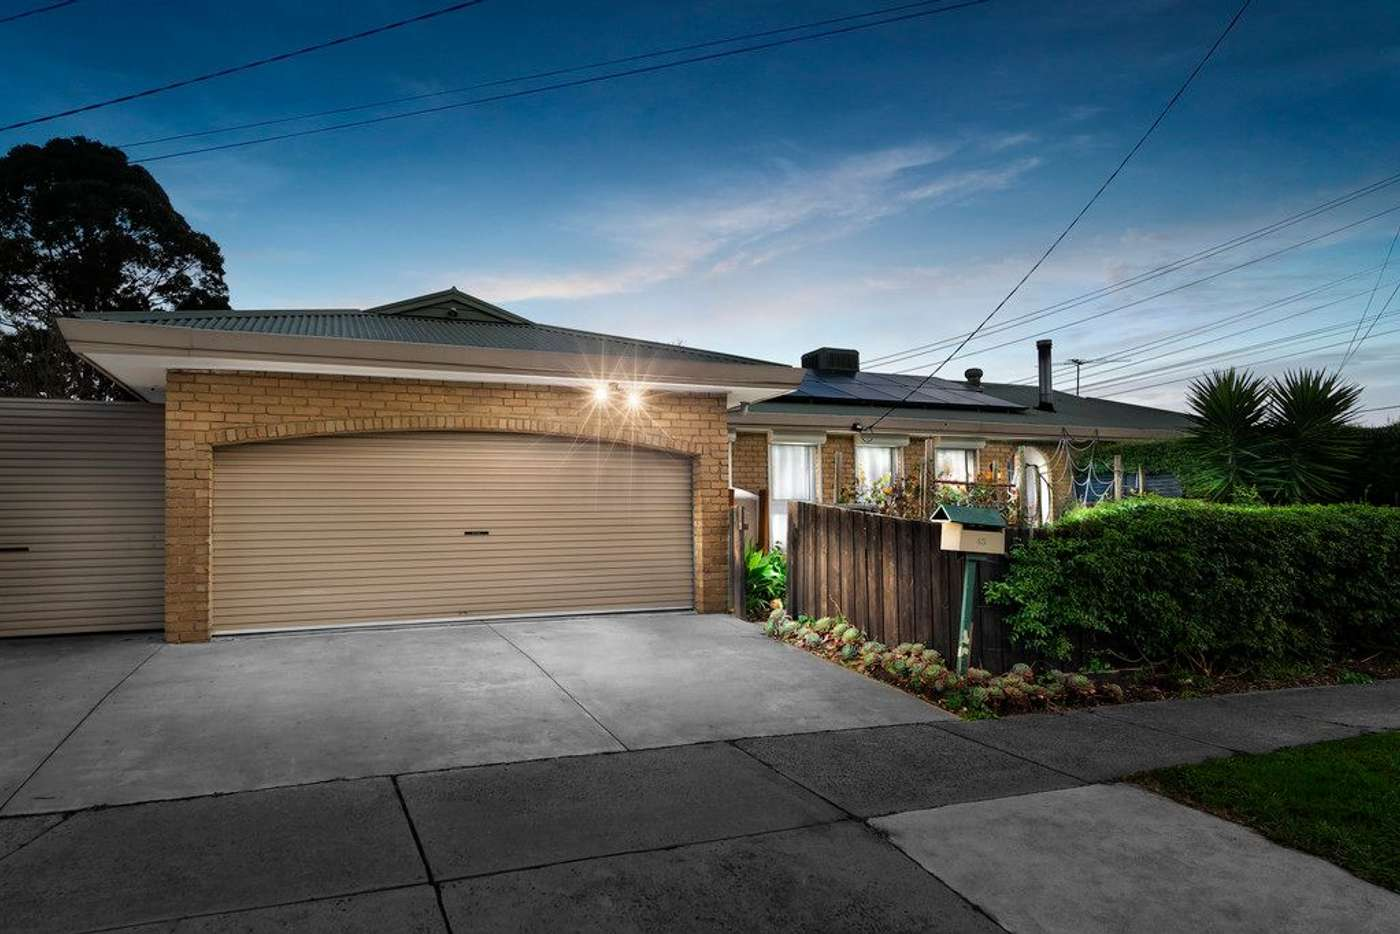 Main view of Homely house listing, 43 Sasses Avenue, Bayswater VIC 3153